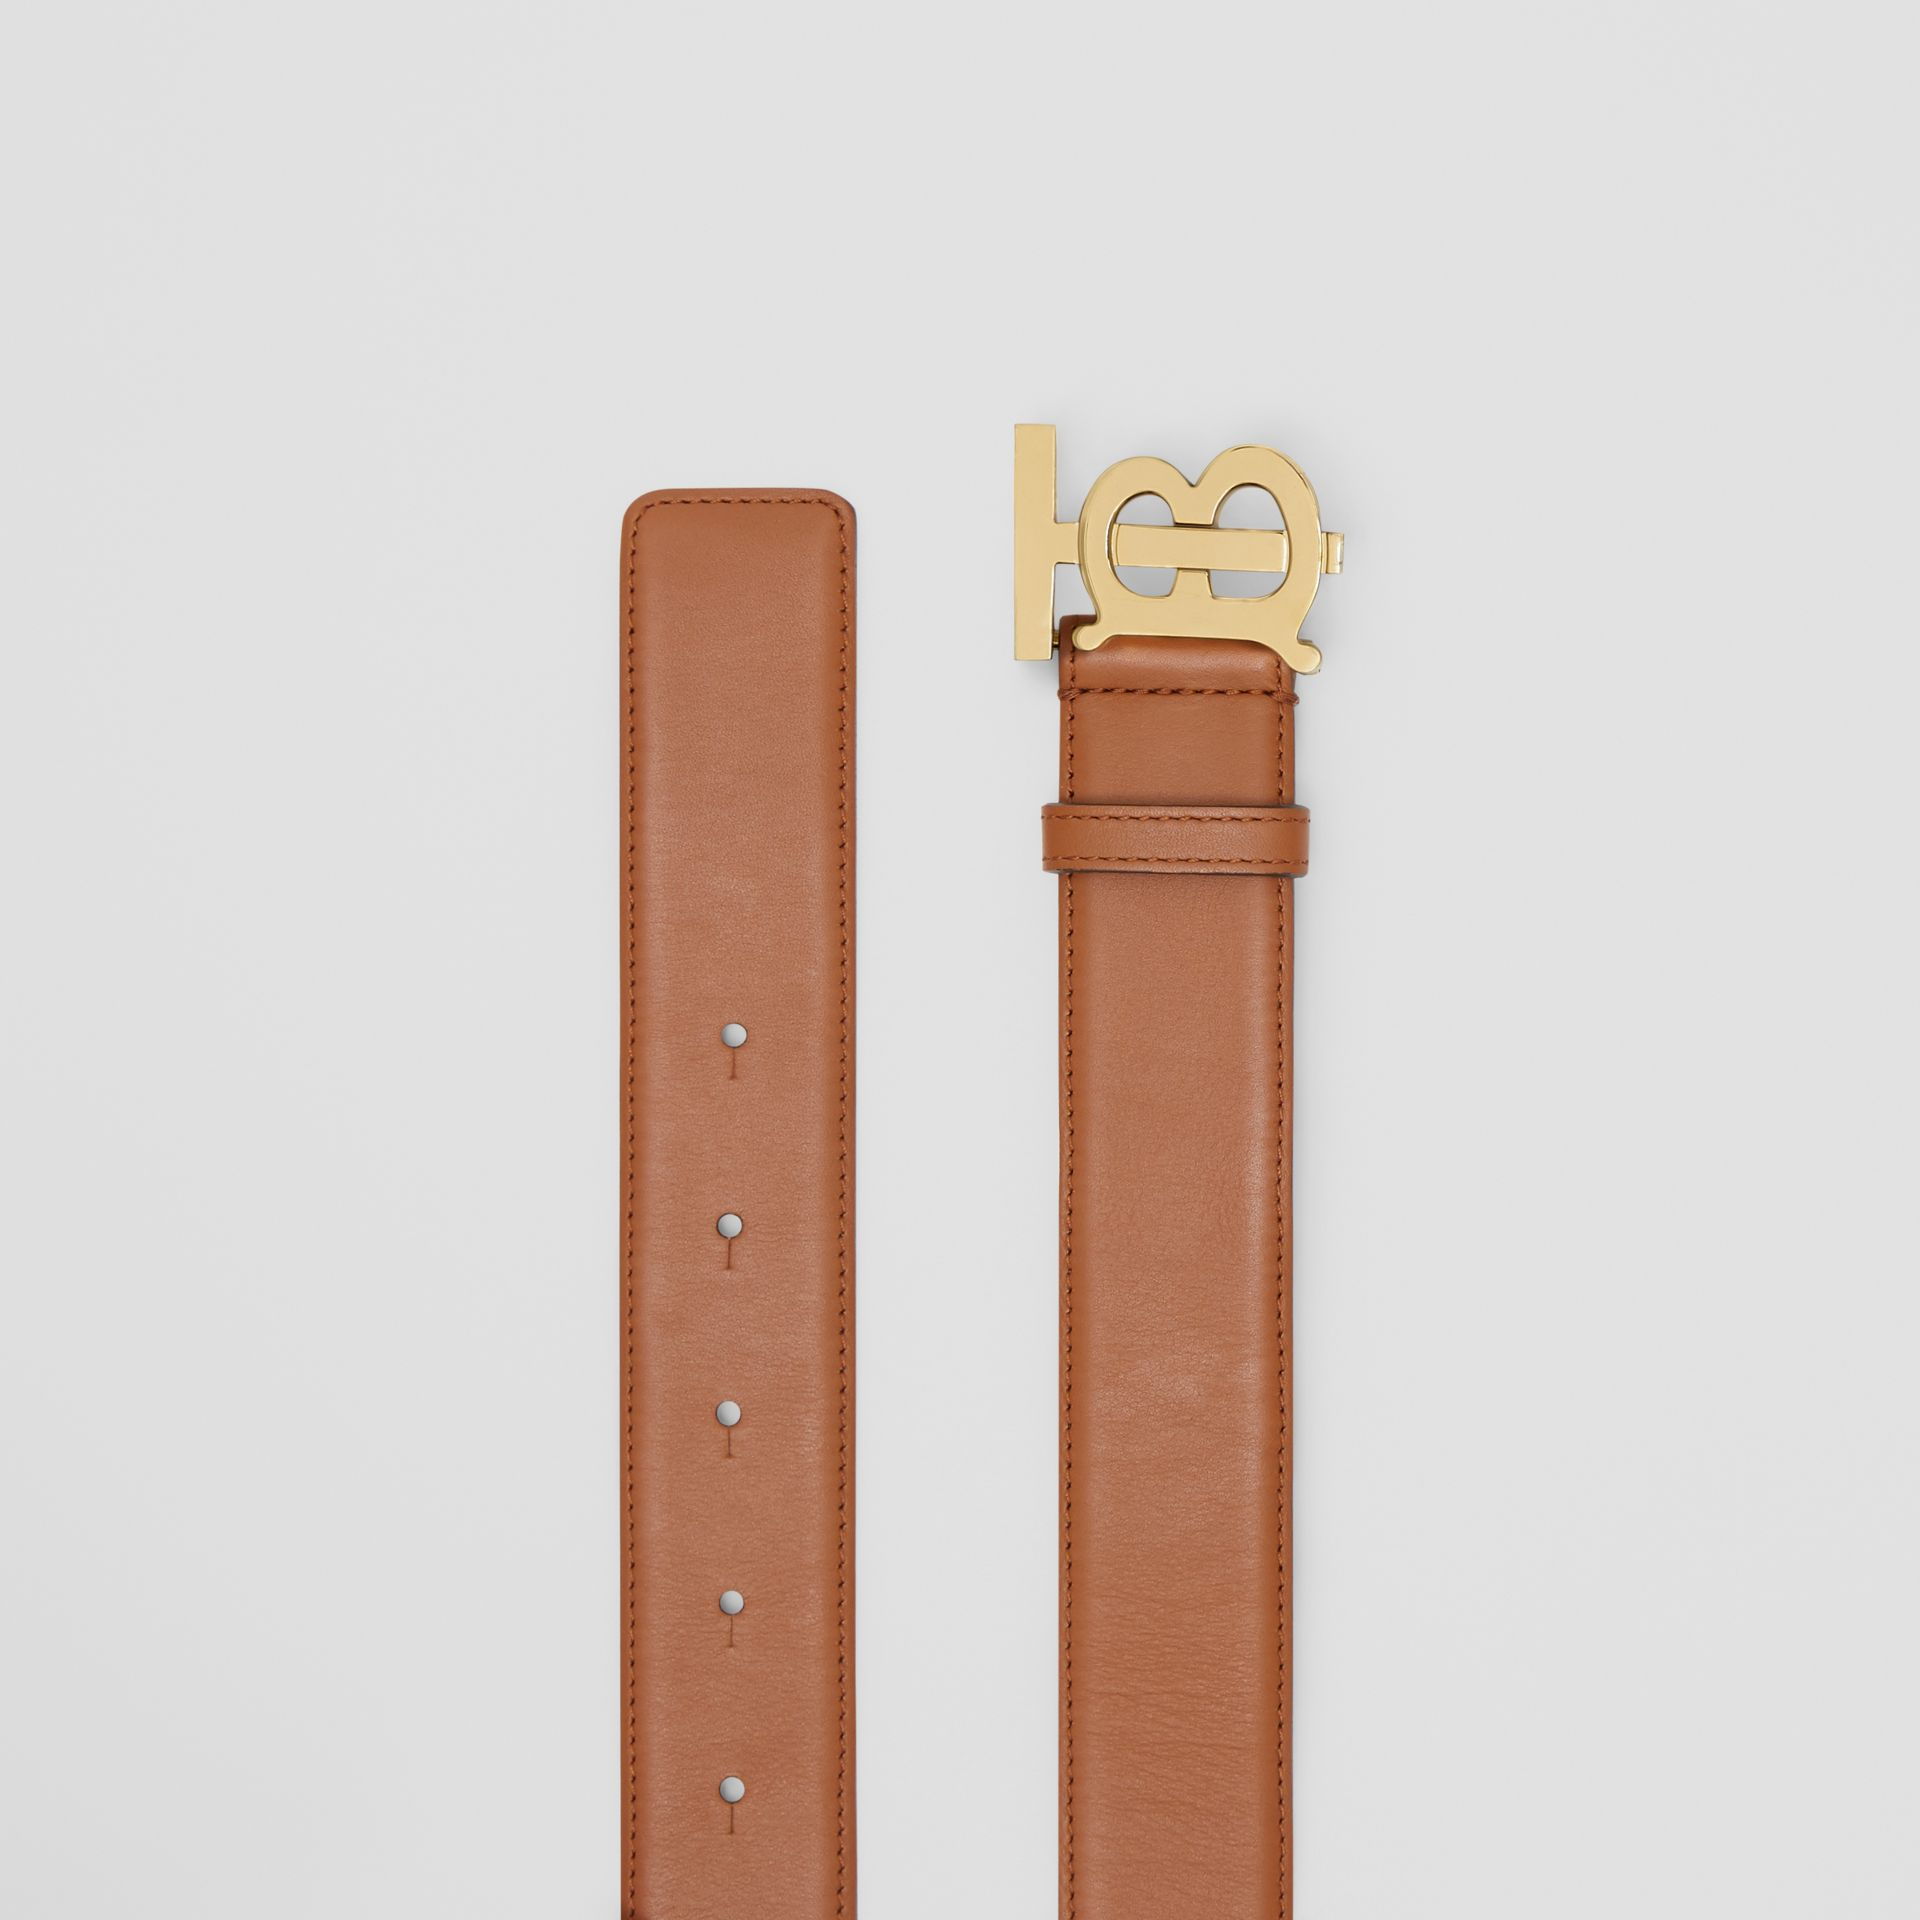 Monogram Motif Leather Belt in Tan - Women | Burberry Singapore - gallery image 5